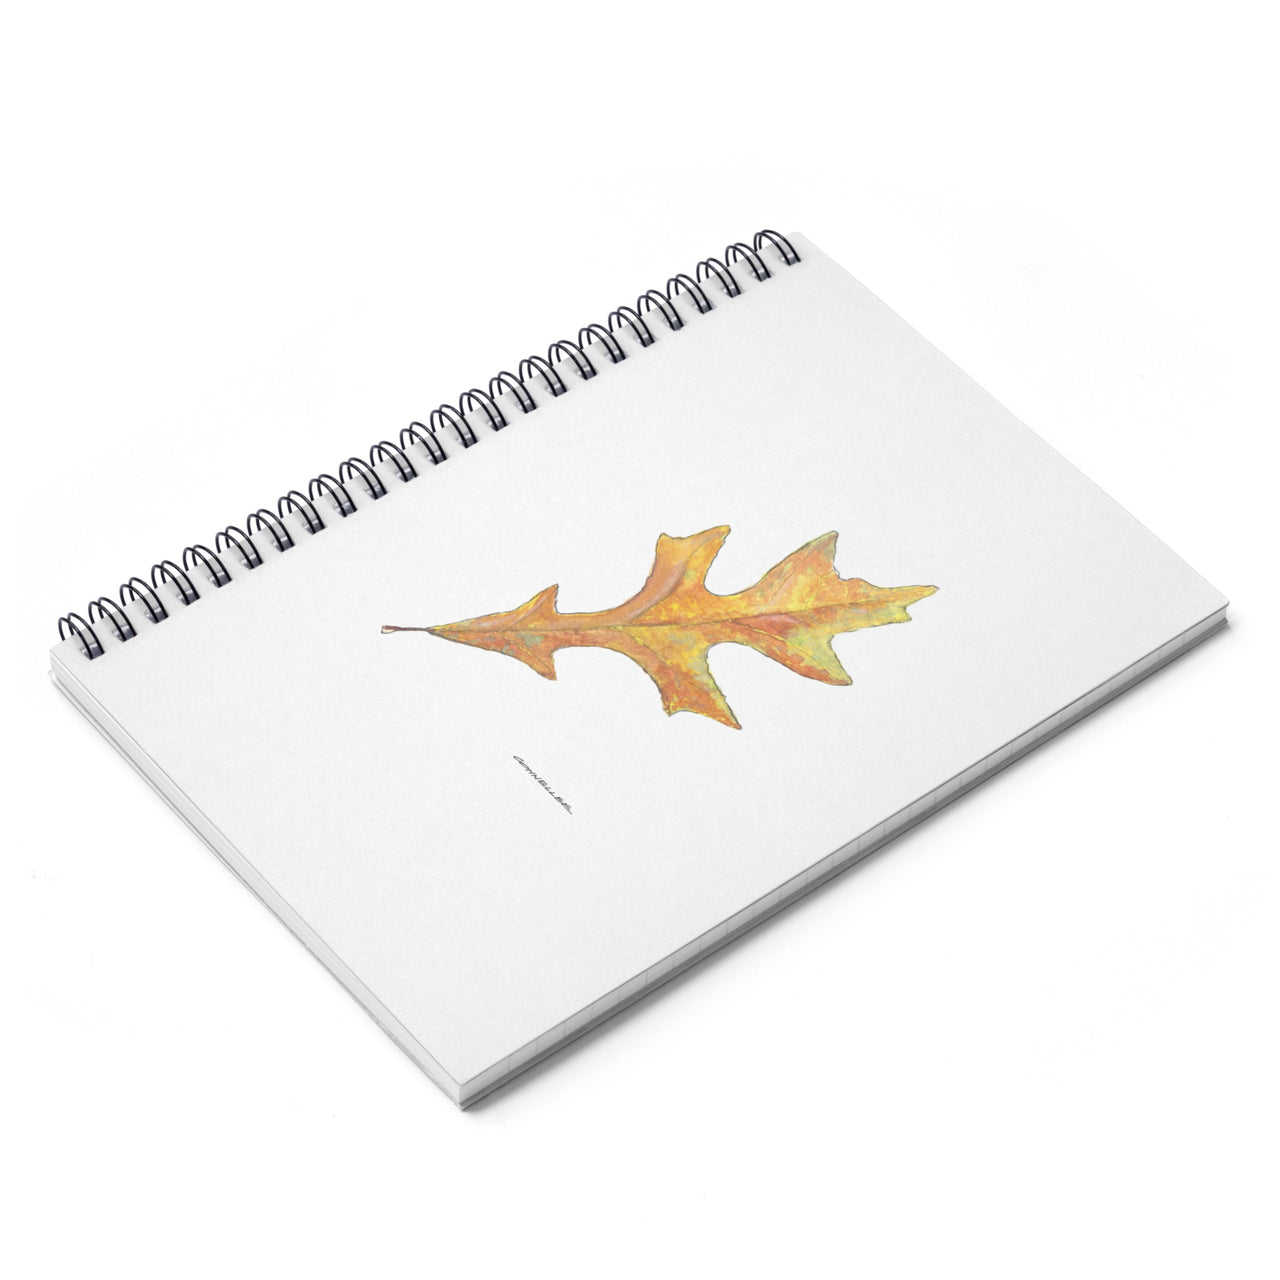 Journal - Oak Leaf Spiral Notebook - Ruled Line - Falling Leaf Card Co.